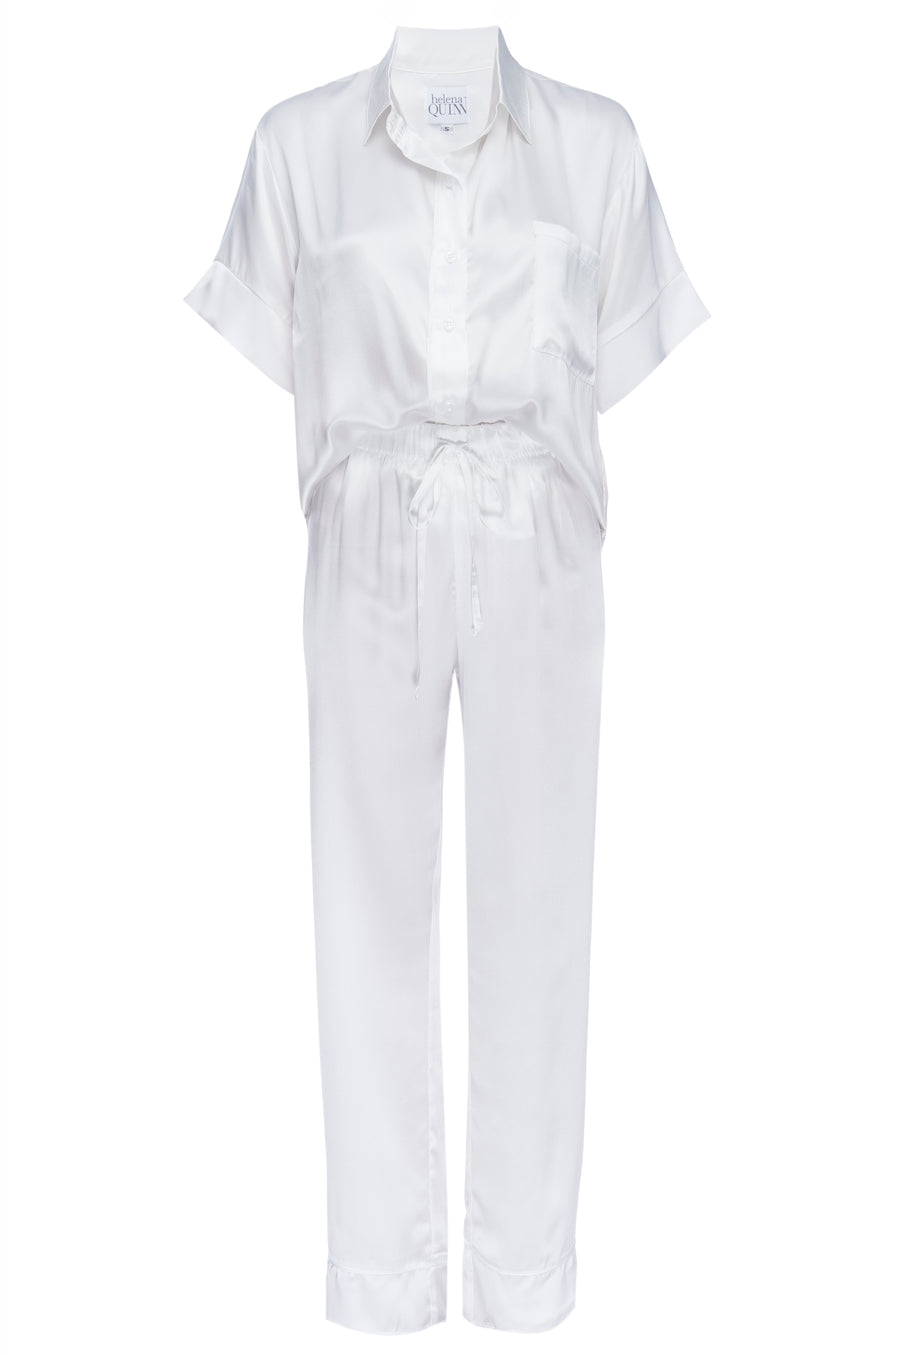 Silk Charmeuse Short Sleeved PJ Top + Pant Set:  Ivory